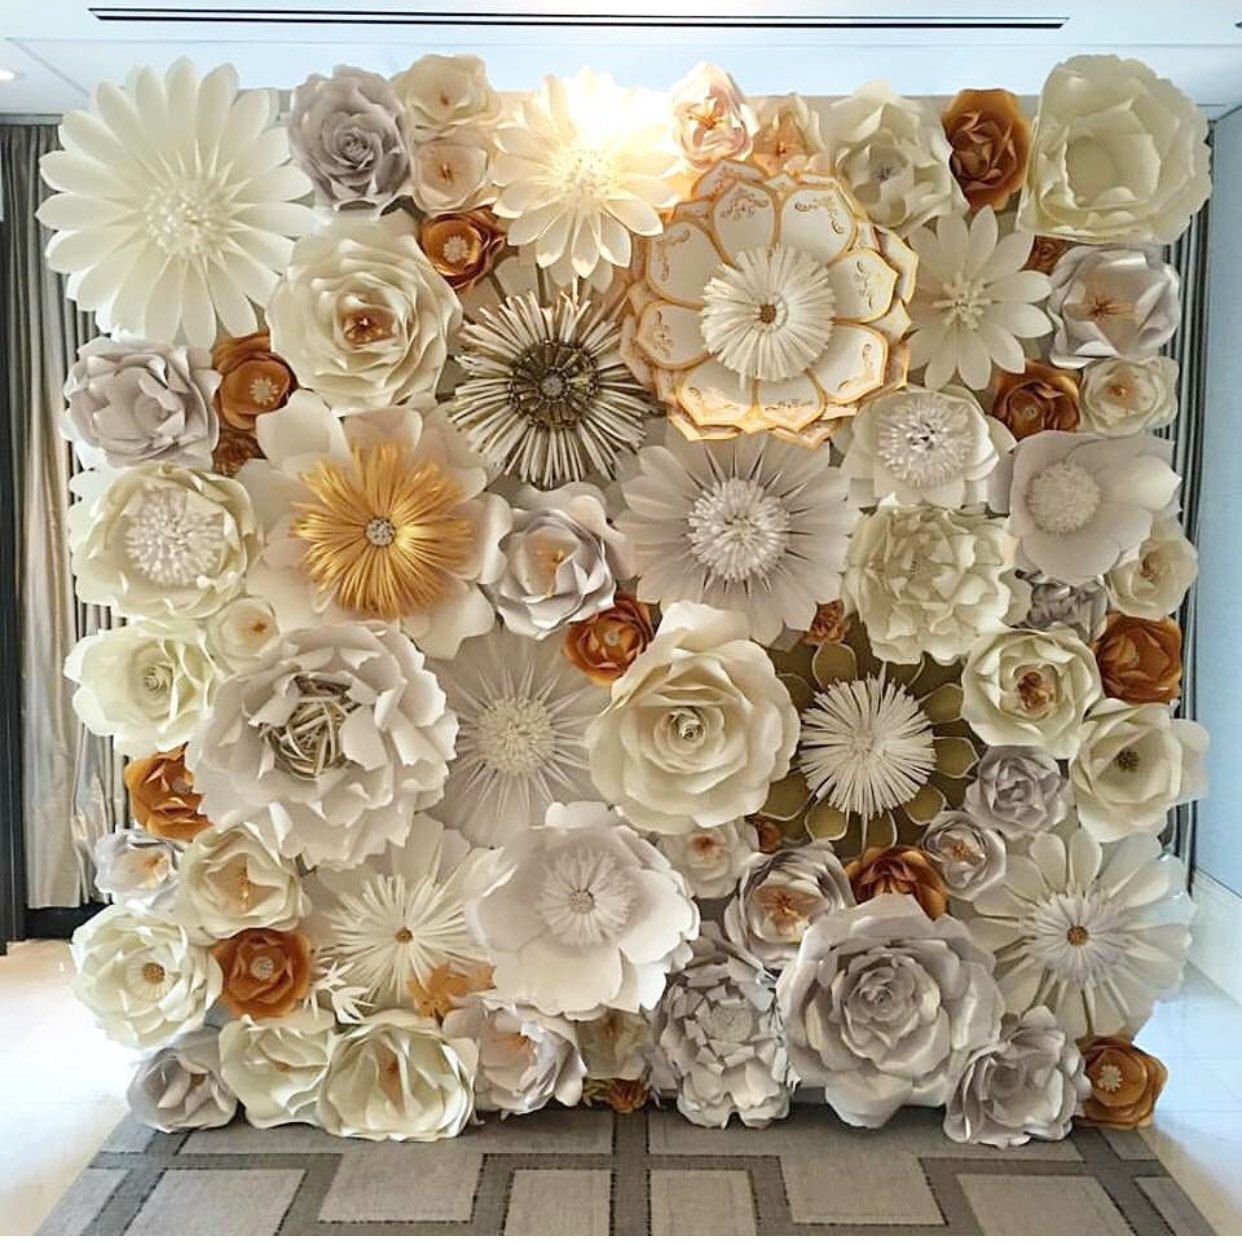 Paper flower wall custom and handmade to order idged1001 paper flower wall custom and handmade to order idged1001 dhlflorist Images